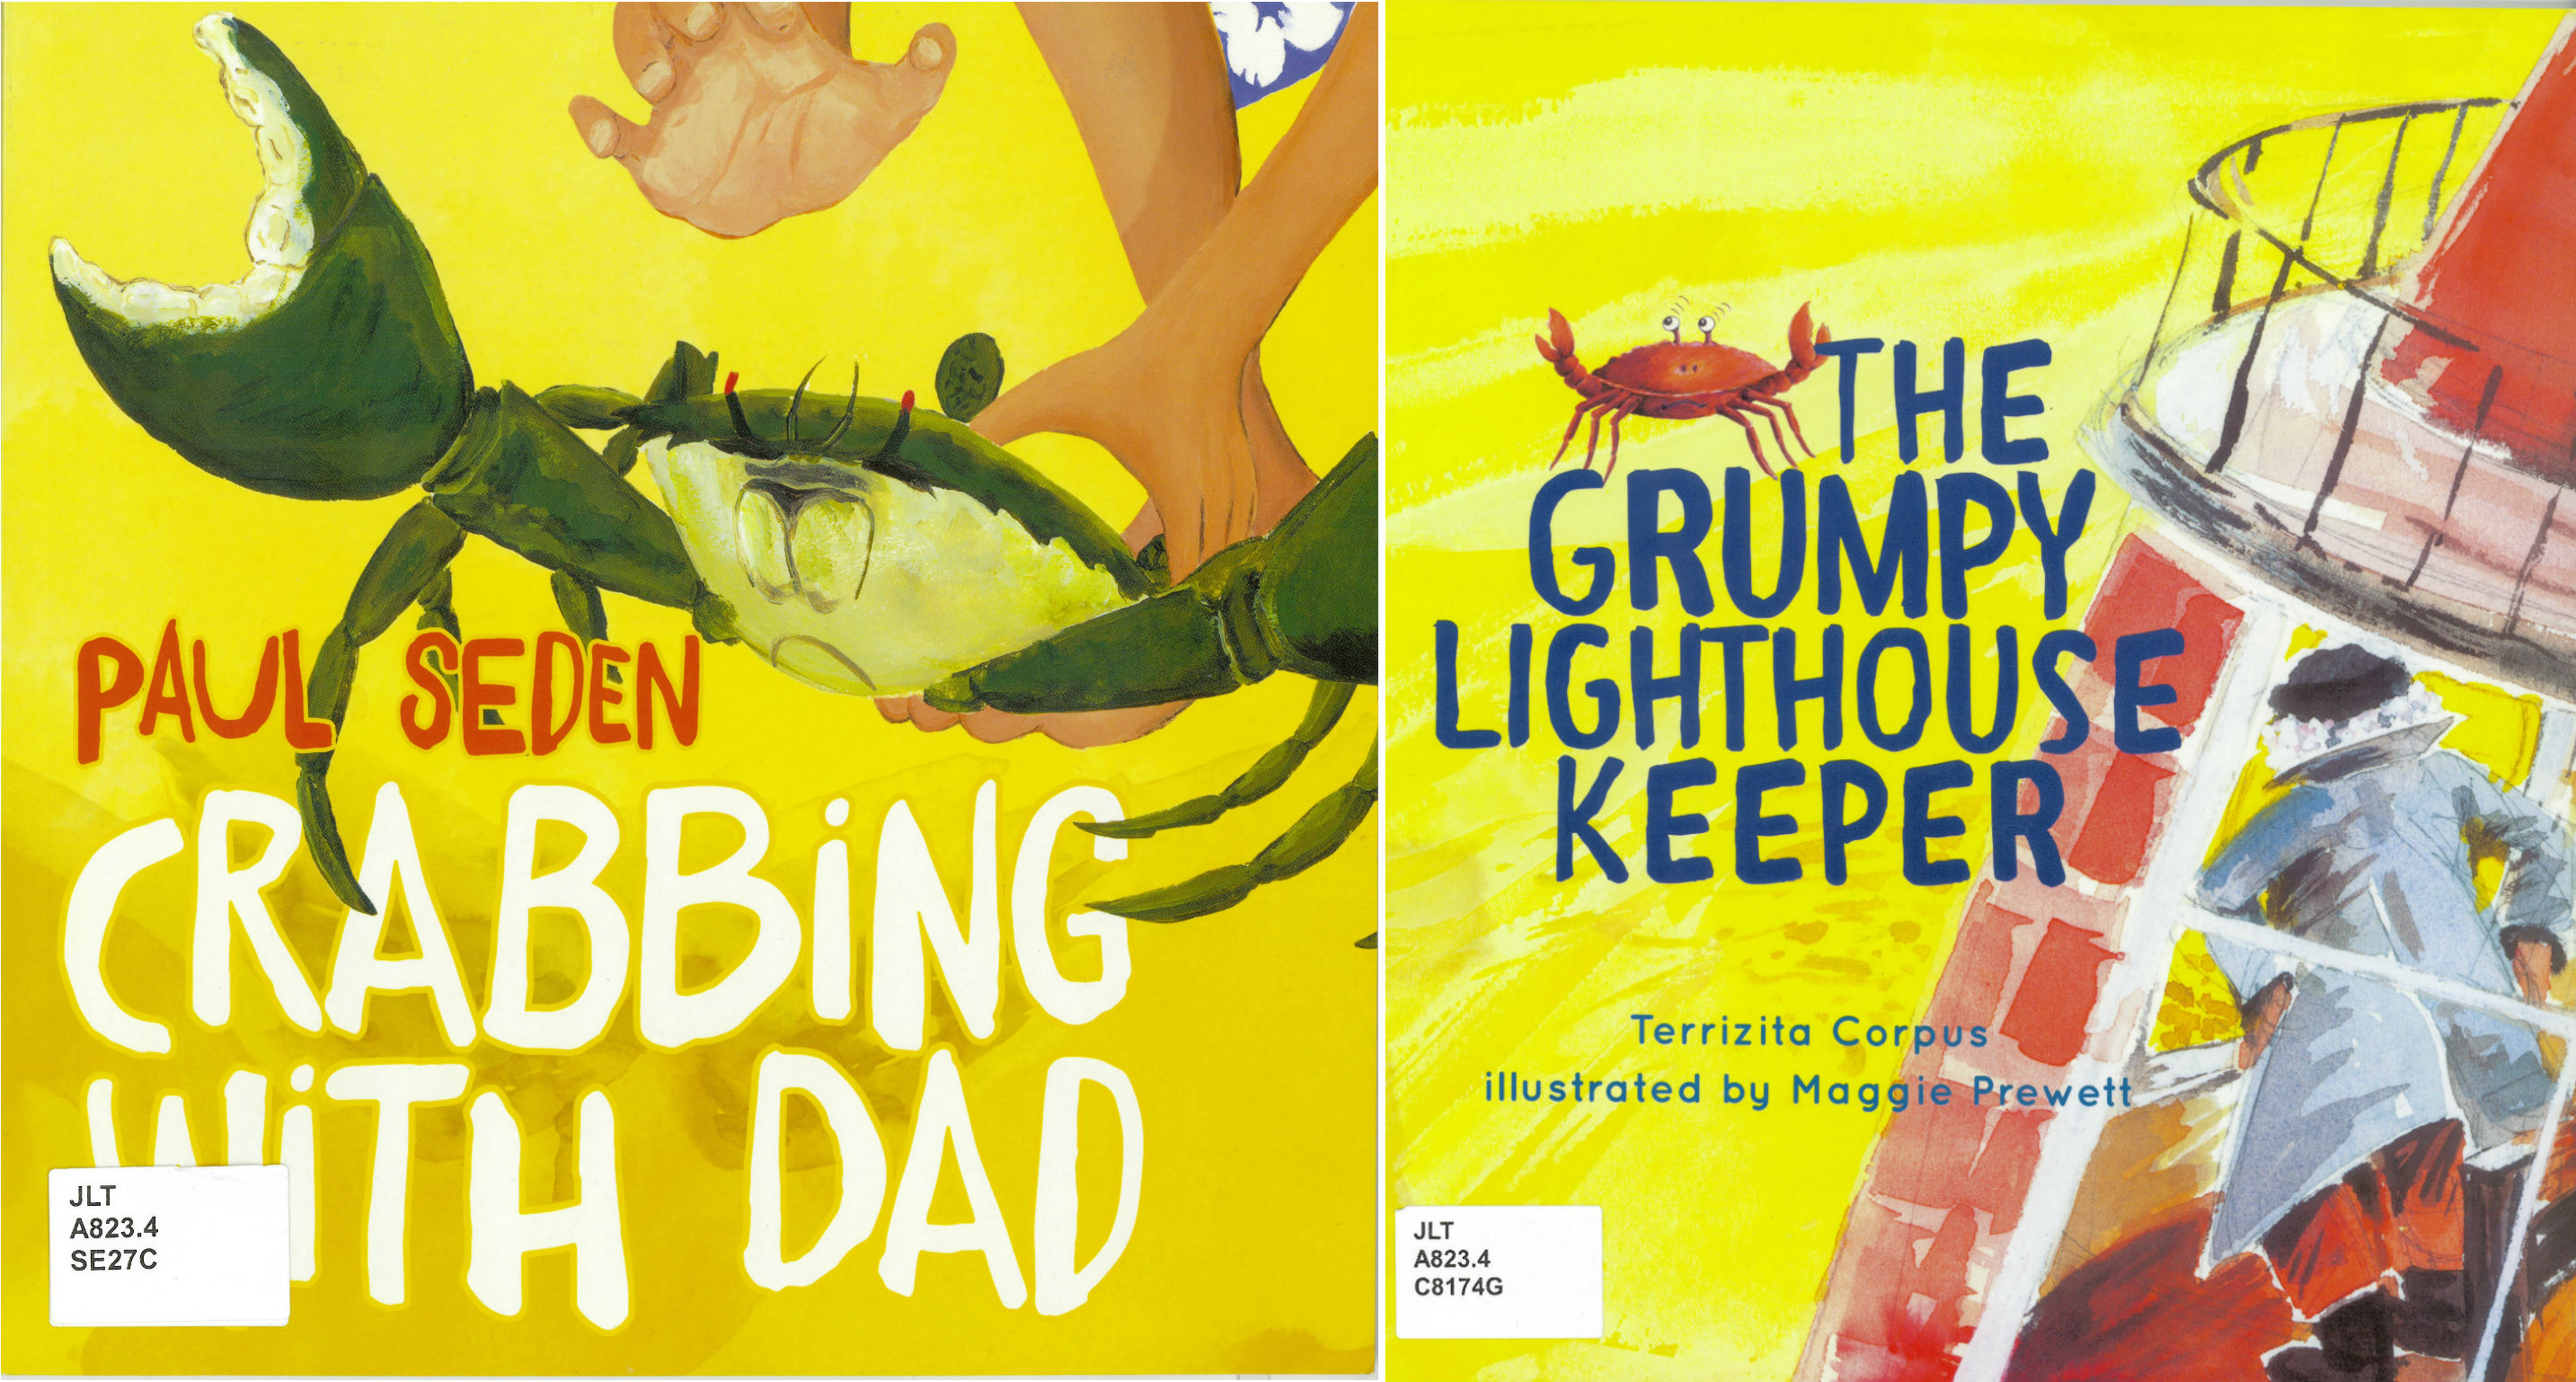 Crabbing with dad by Paul Sedden, The grumpy lighthouse keeper by Territzita Corpus